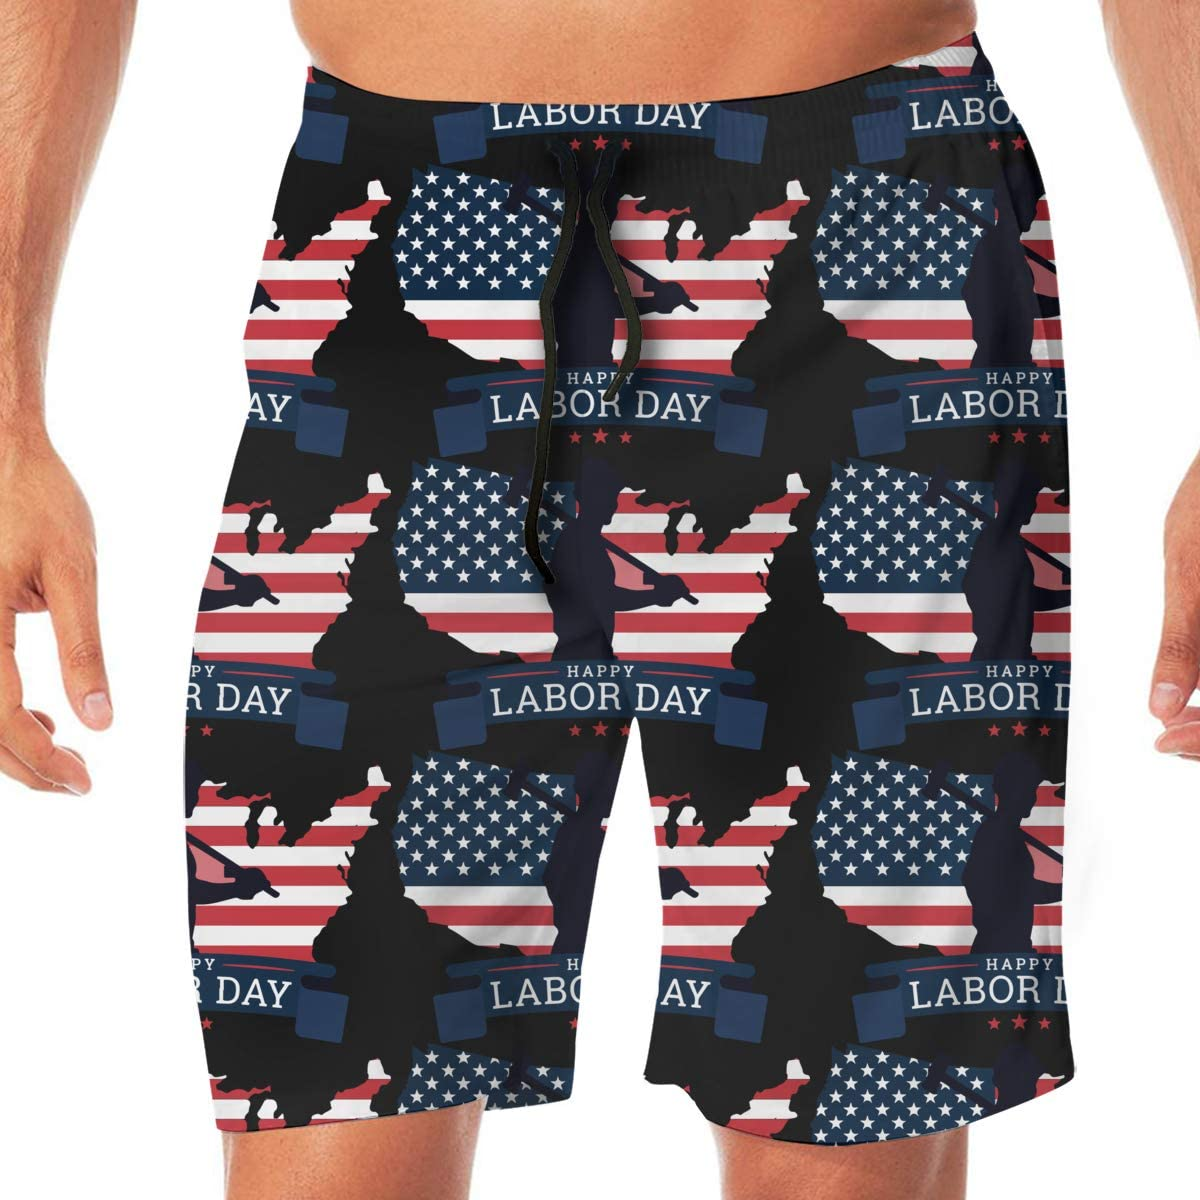 TAOHJS97 Happy Labor Day 6 Mens Quick Dry Board//Beach Shorts Lightweight Swim Trunks Best for Vacation